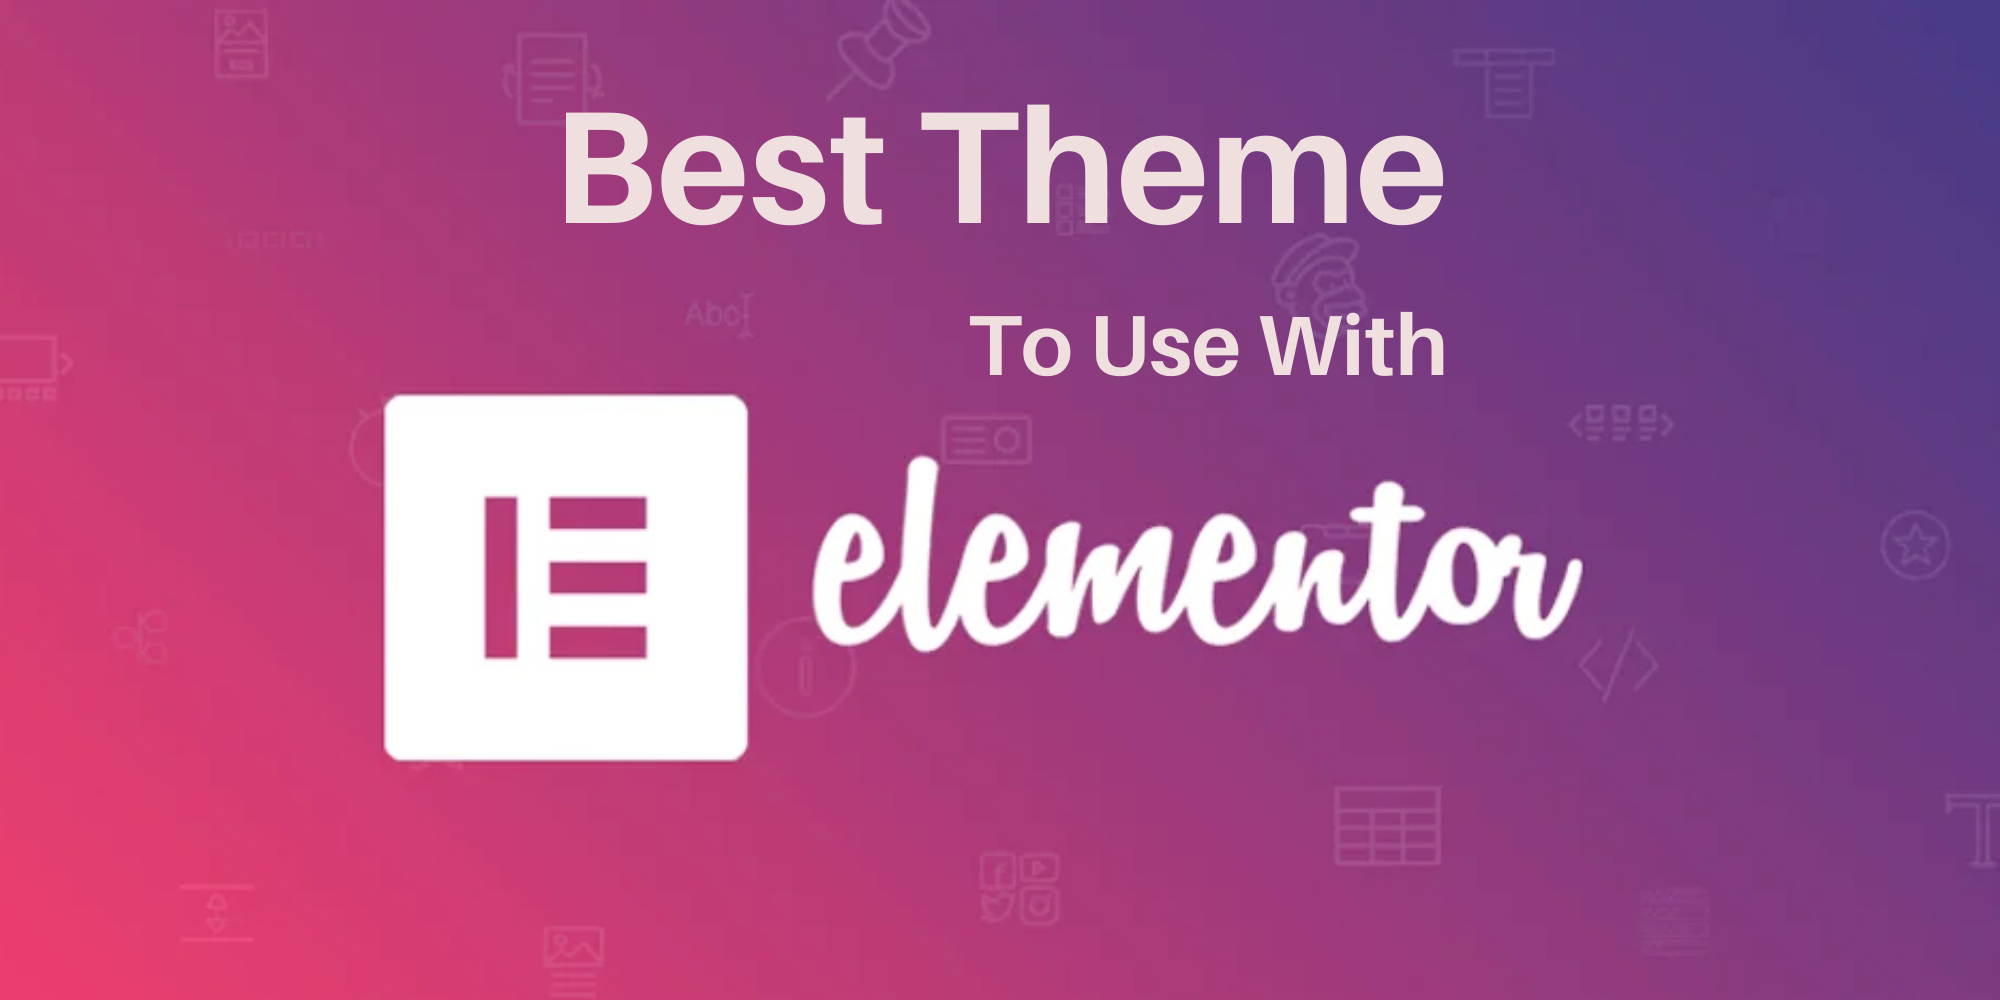 best theme to use with elementor